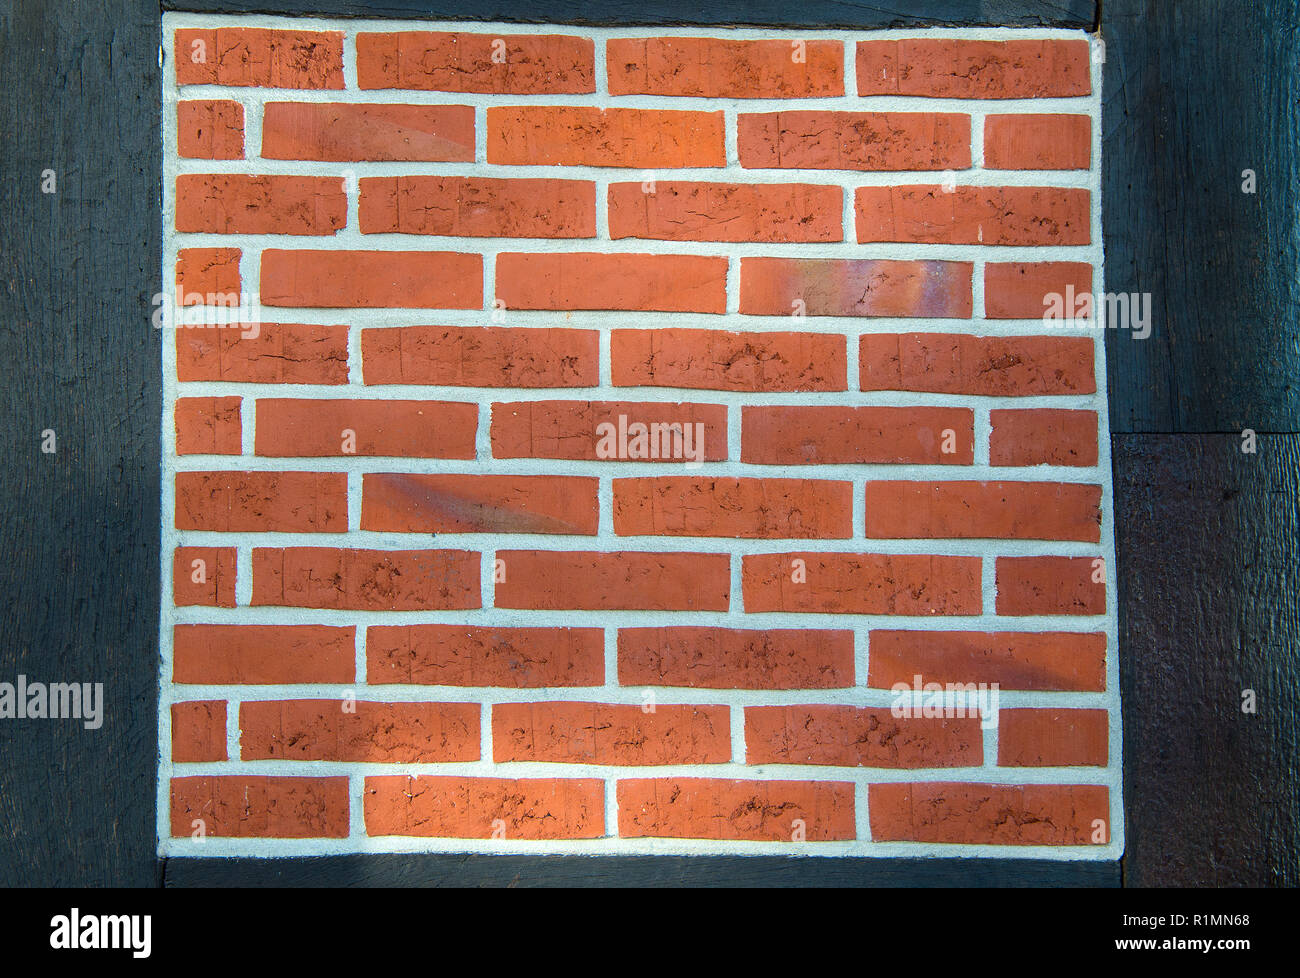 Brickwork of red bricks on wooden wall on black background. Defense, protection, security concept - Stock Image